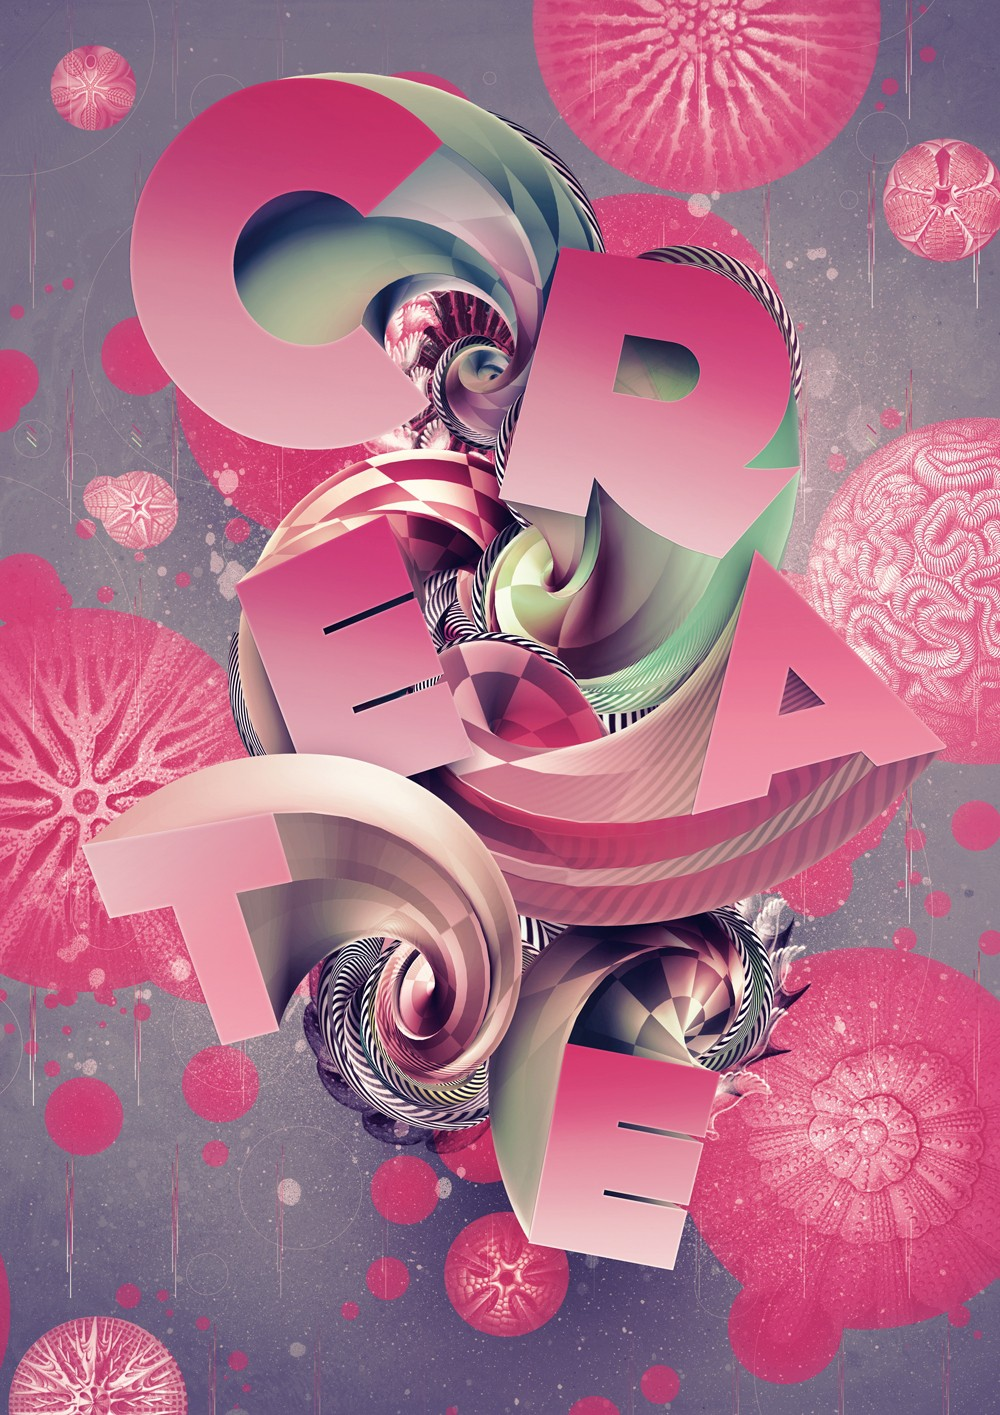 Design Art Photoshop Tutorial: Create 3d Type Art Using Photoshop Cs5